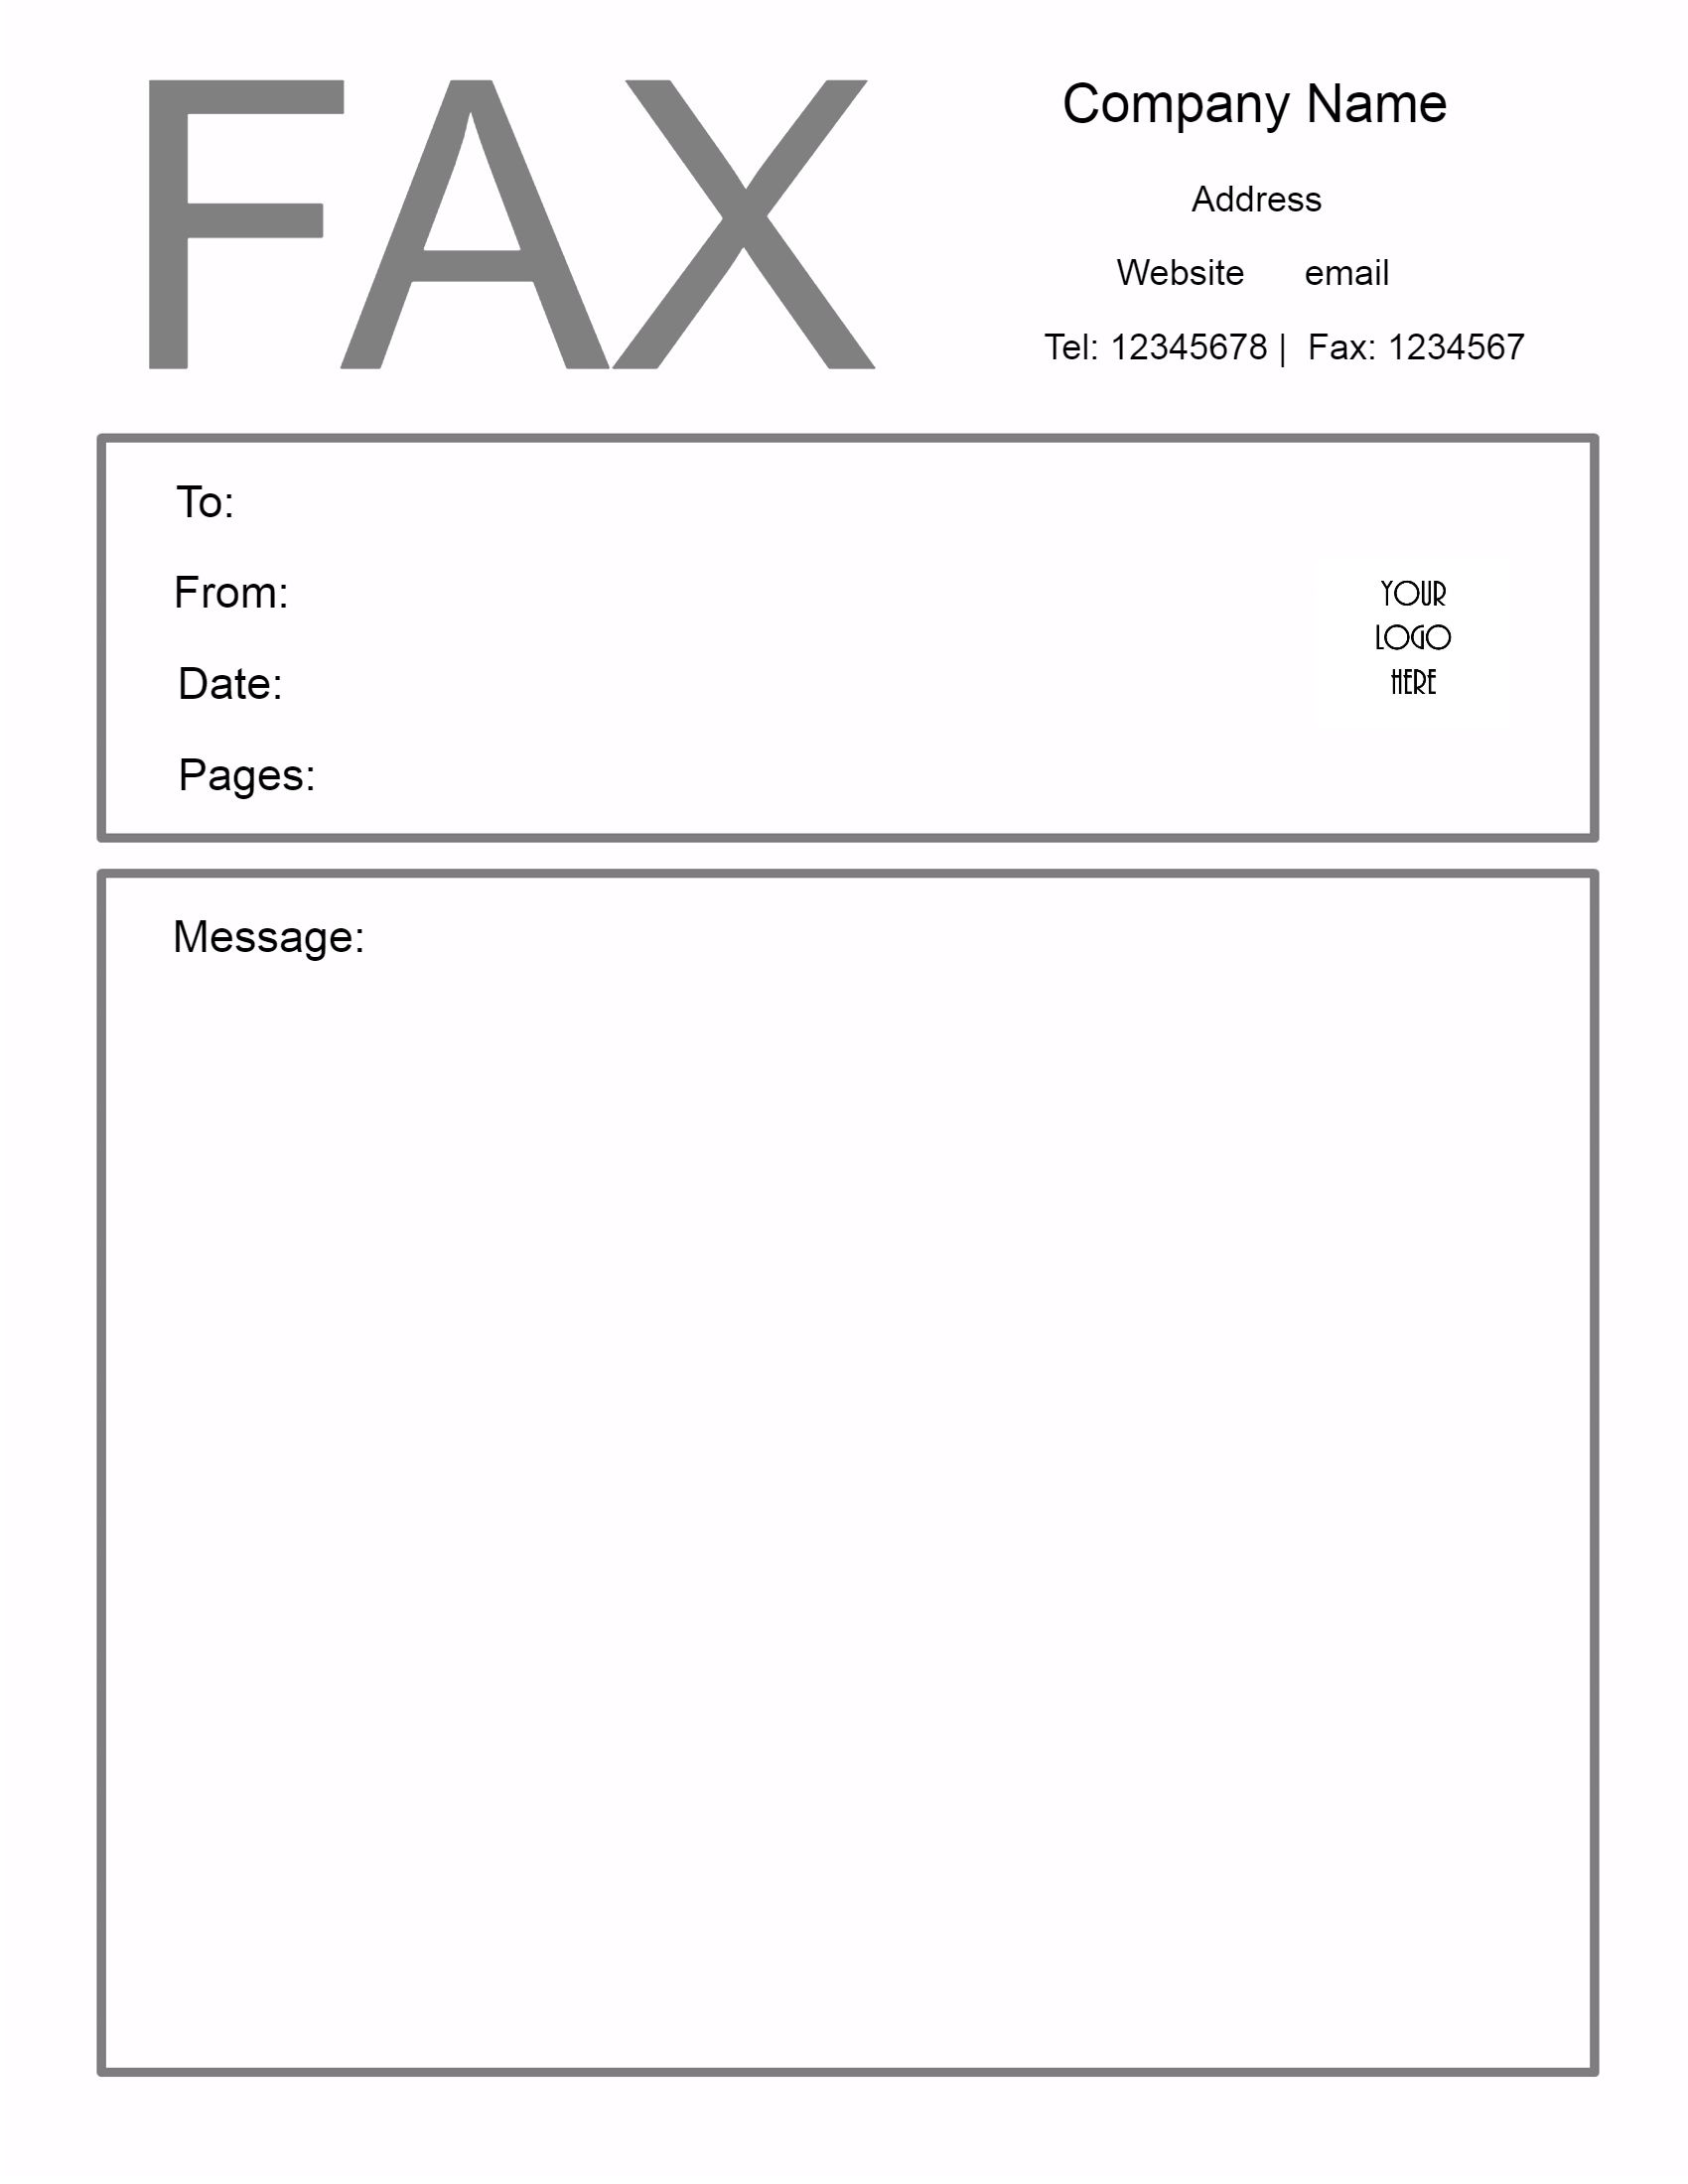 cover sheet for a fax